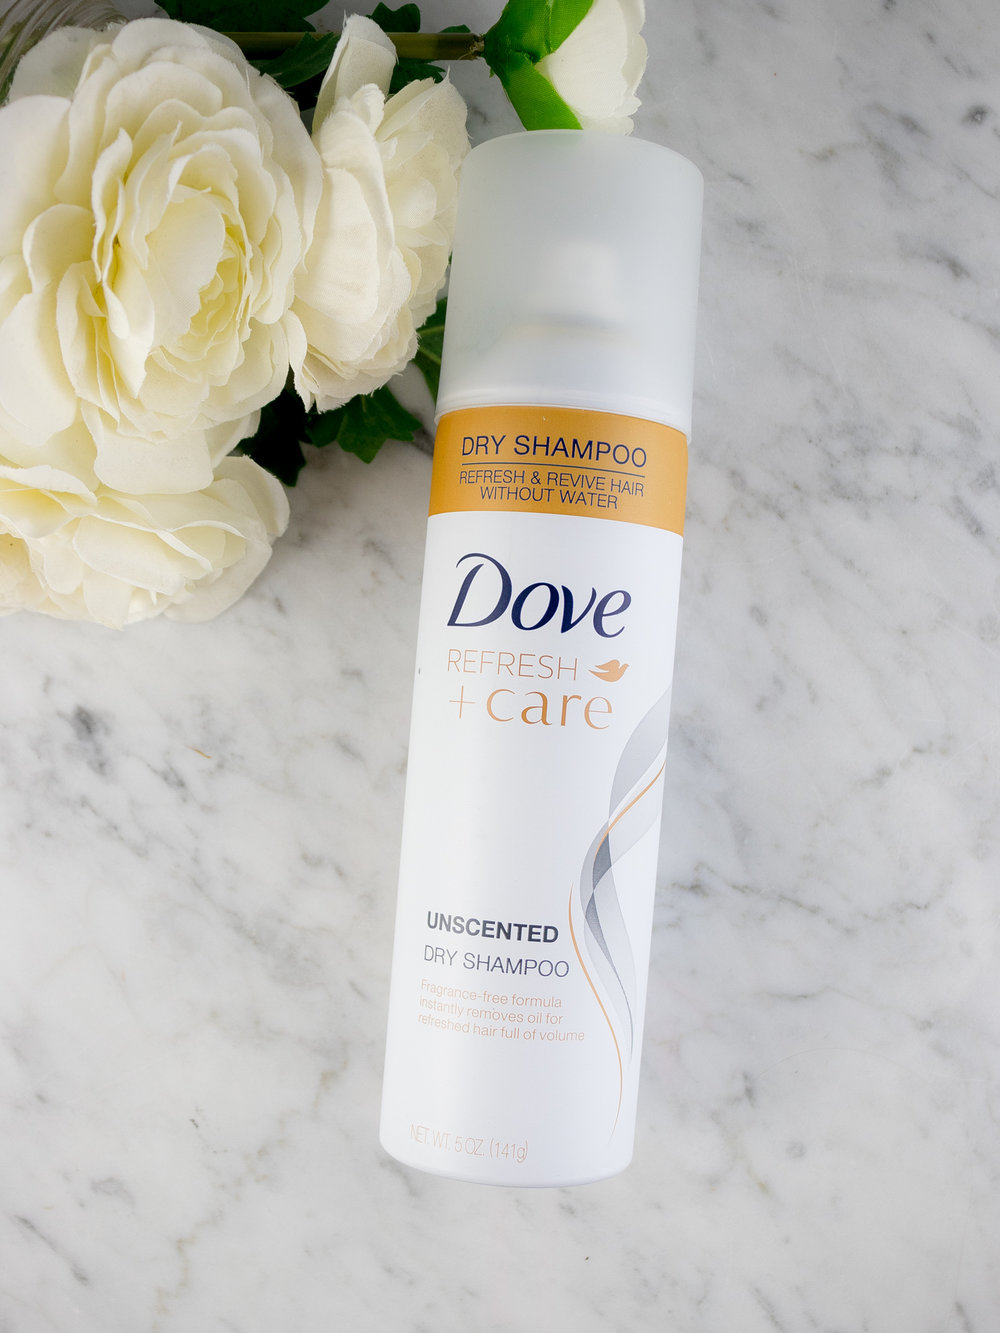 Dove Refresh + Care Dry Shampoo